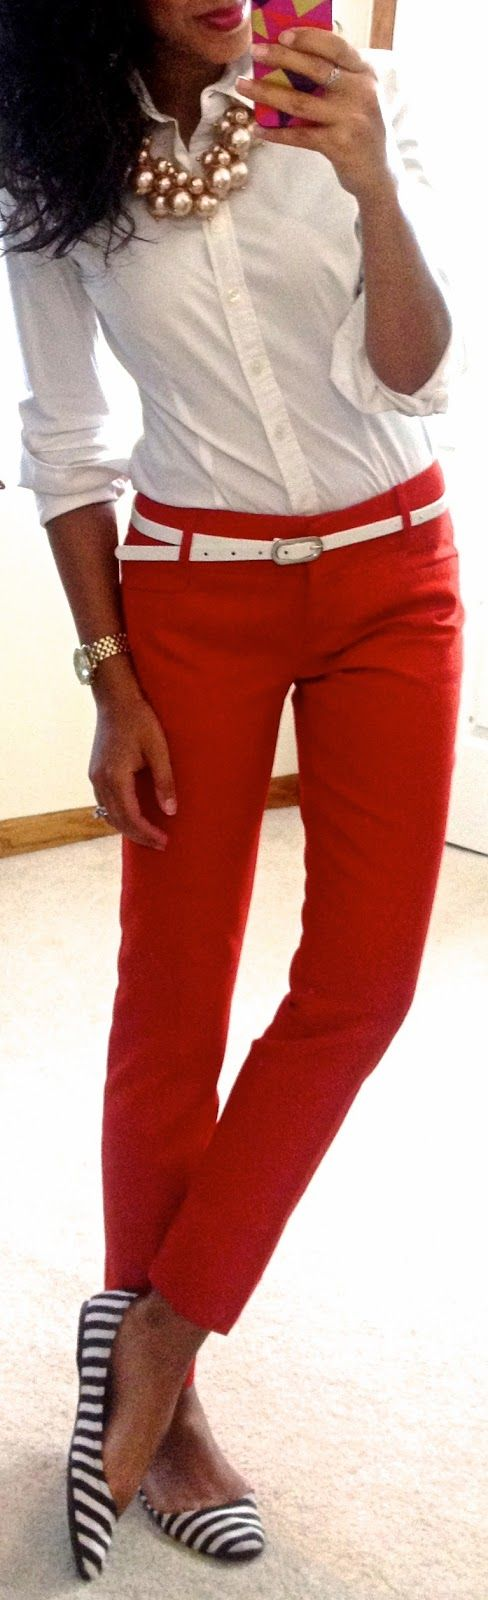 Work Outfit: White Button down, red pants, white belt, striped flats